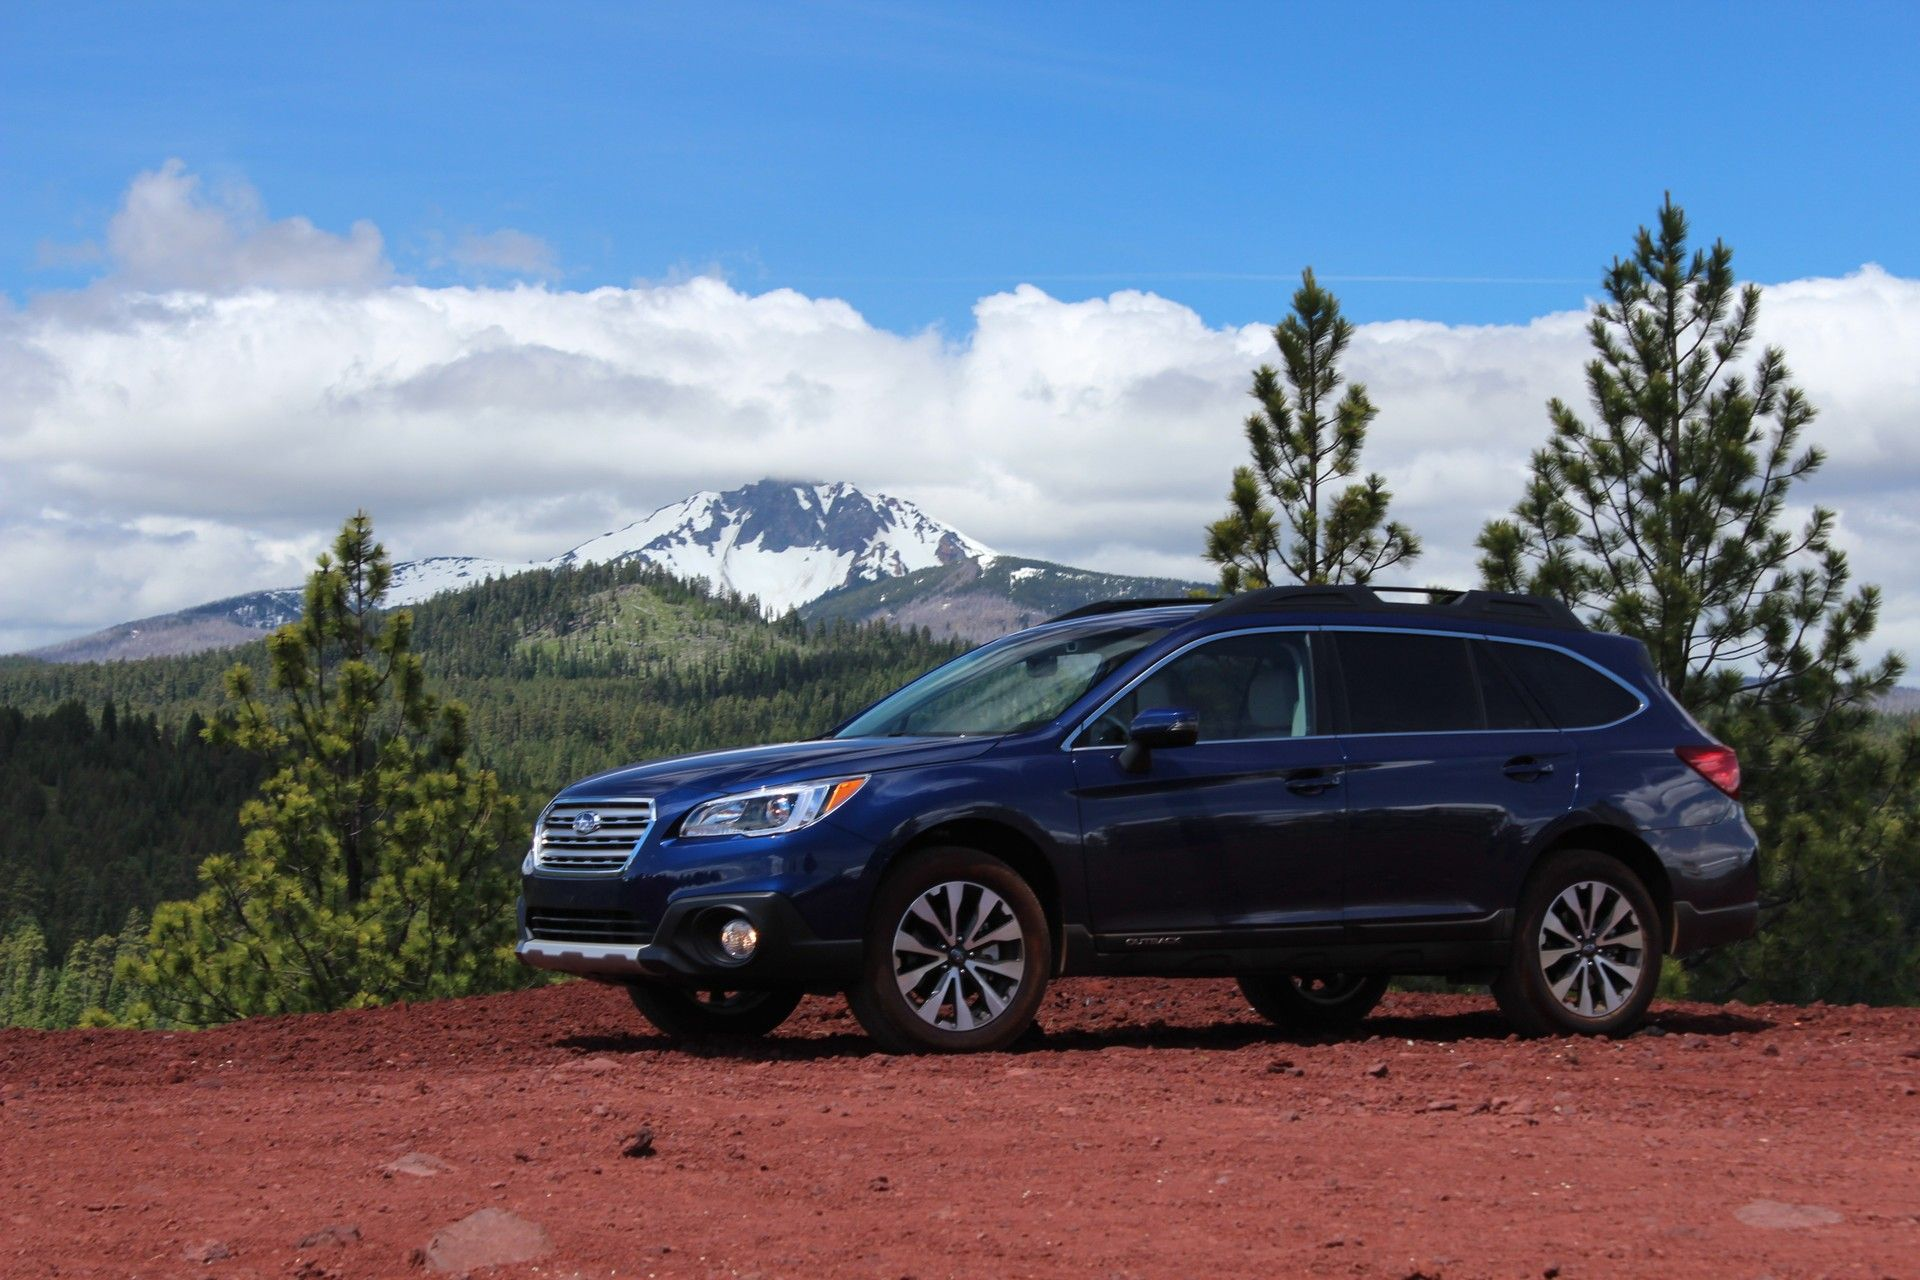 2015 Subaru Outback And Legacy Earn Five Star Safety Ratings Subaru Outback Subaru Outback